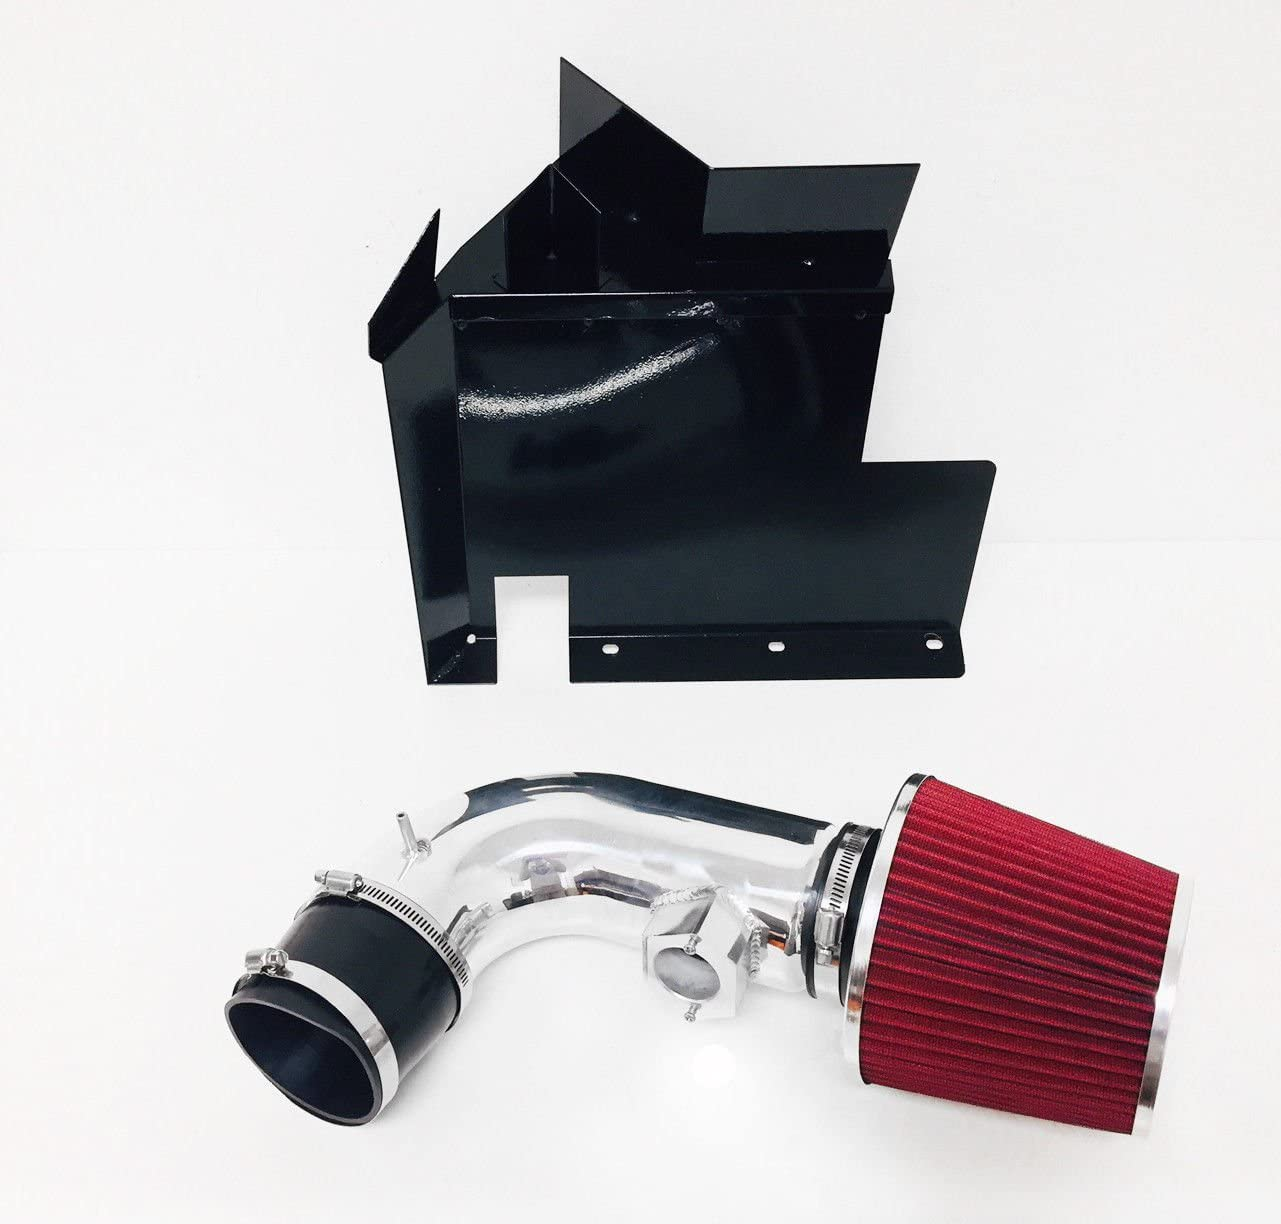 Performance Heat Shield Cold New item Max 56% OFF Air Kit System works Intake Filter